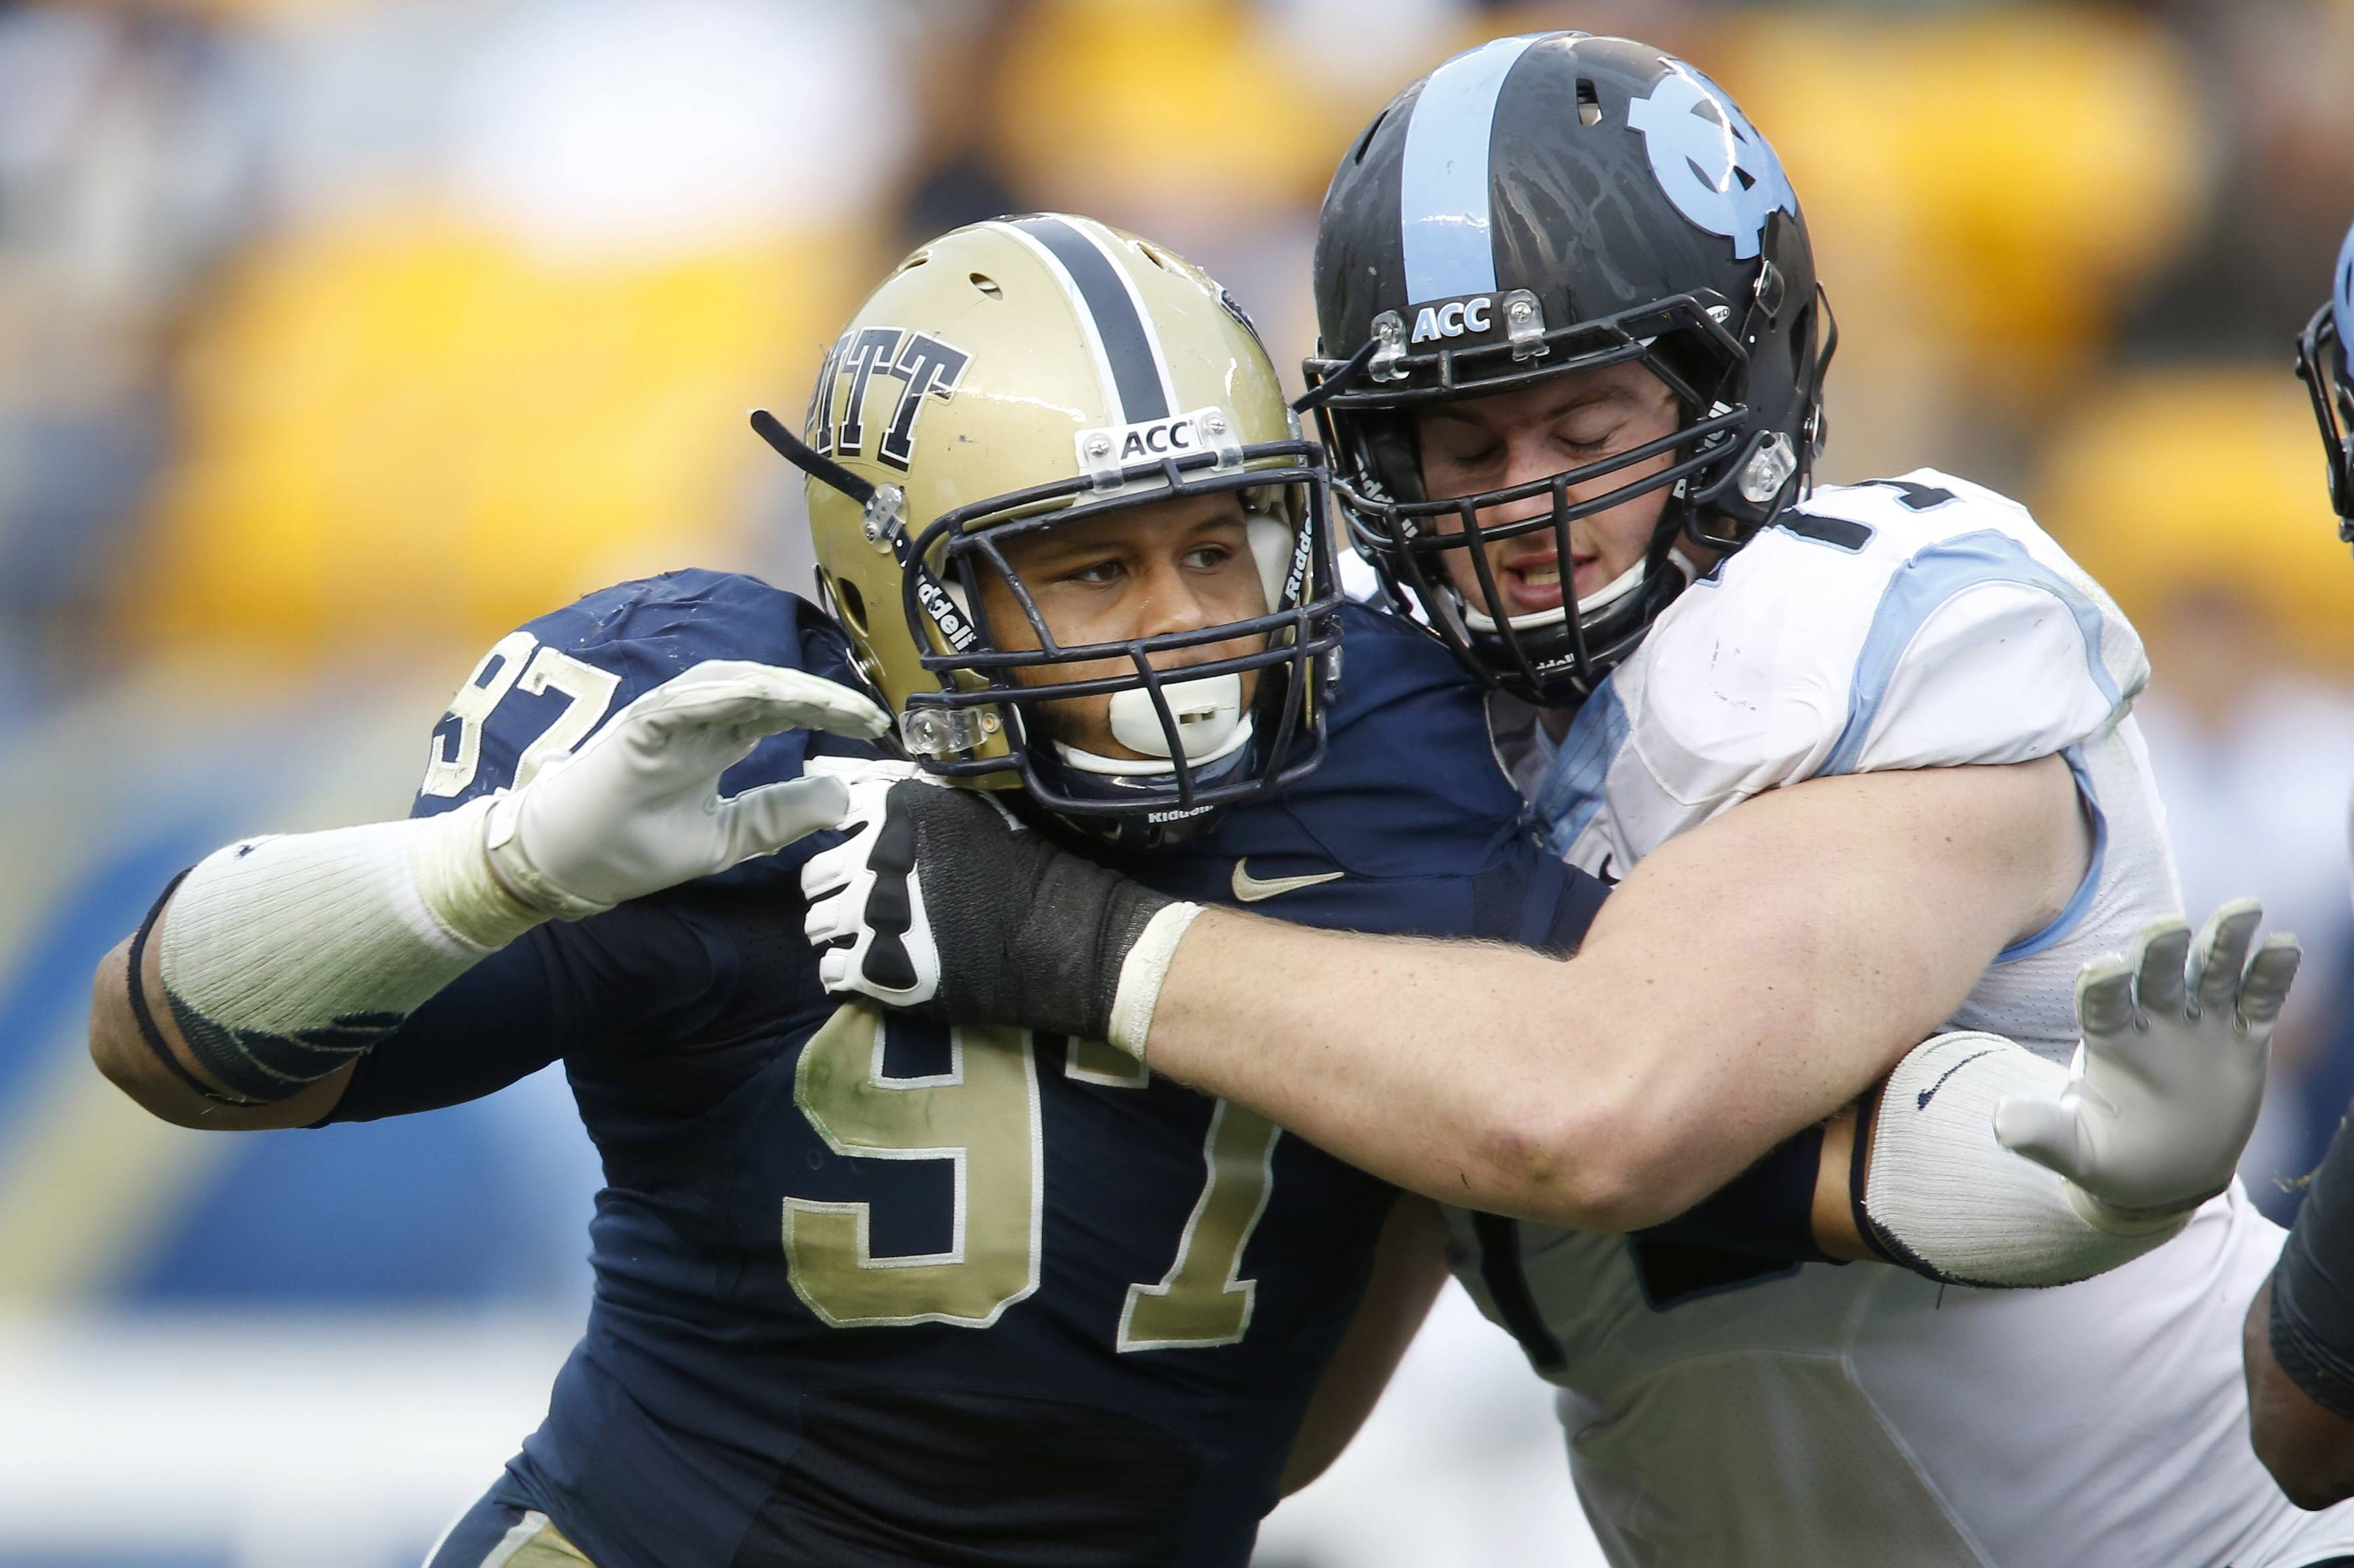 Pittsburgh defensive lineman Aaron Donald, left, could be the Panthers' highest draft pick since wideout Larry Fitzgerald was taken third overall by the Arizona Cardinals in 2004. He had an NCAA-best 28½ tackles for loss last season.